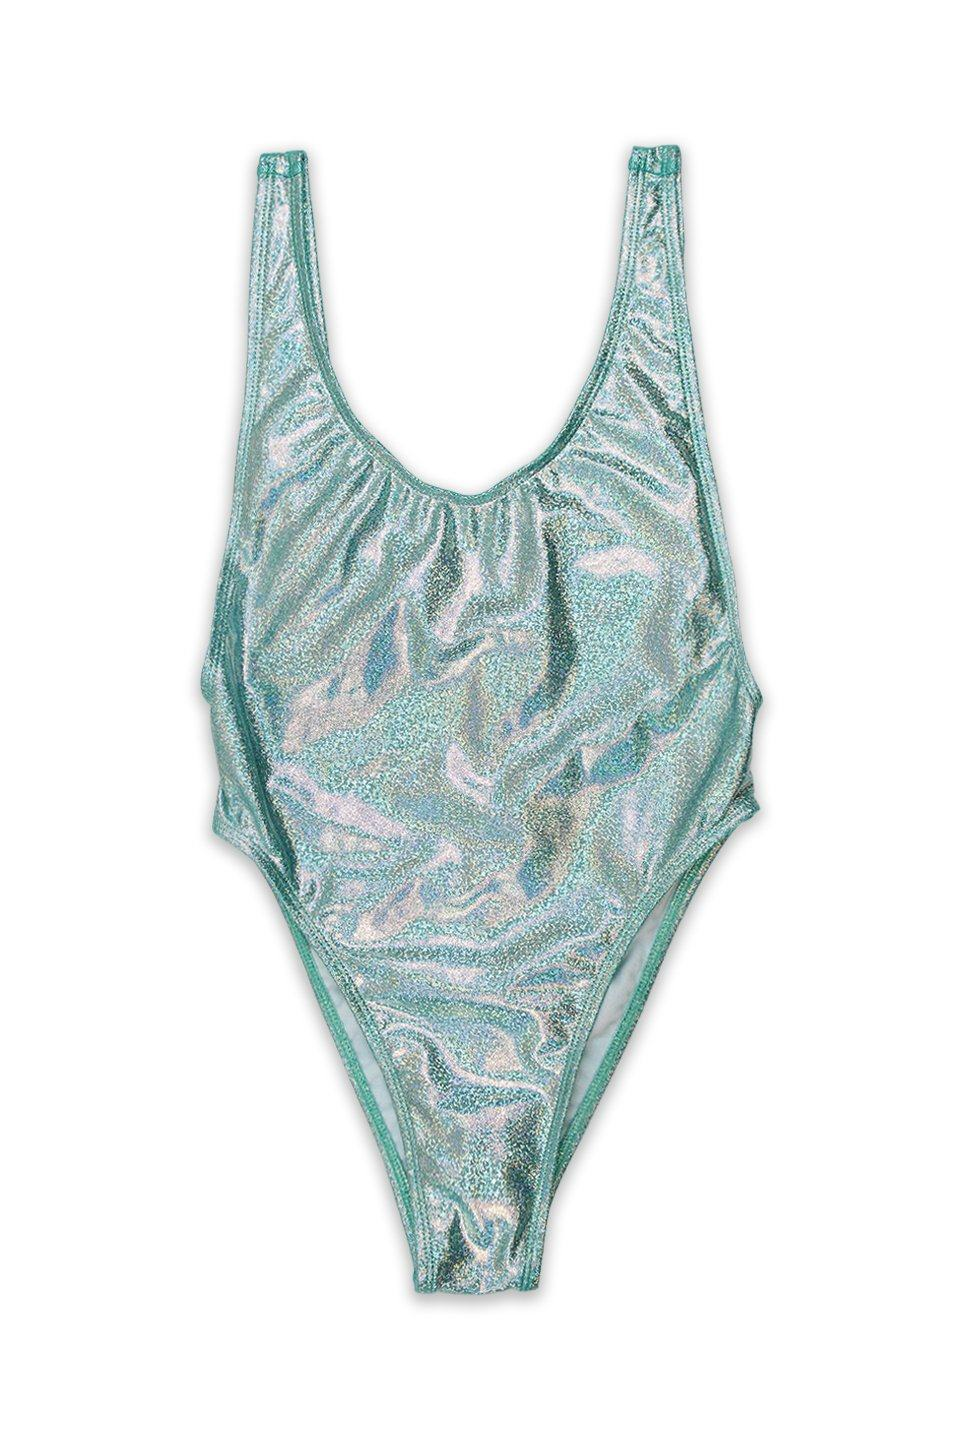 Blue Glitter V-Cleavage High Cut One Piece Front - Dippin' Daisy's Swimwear